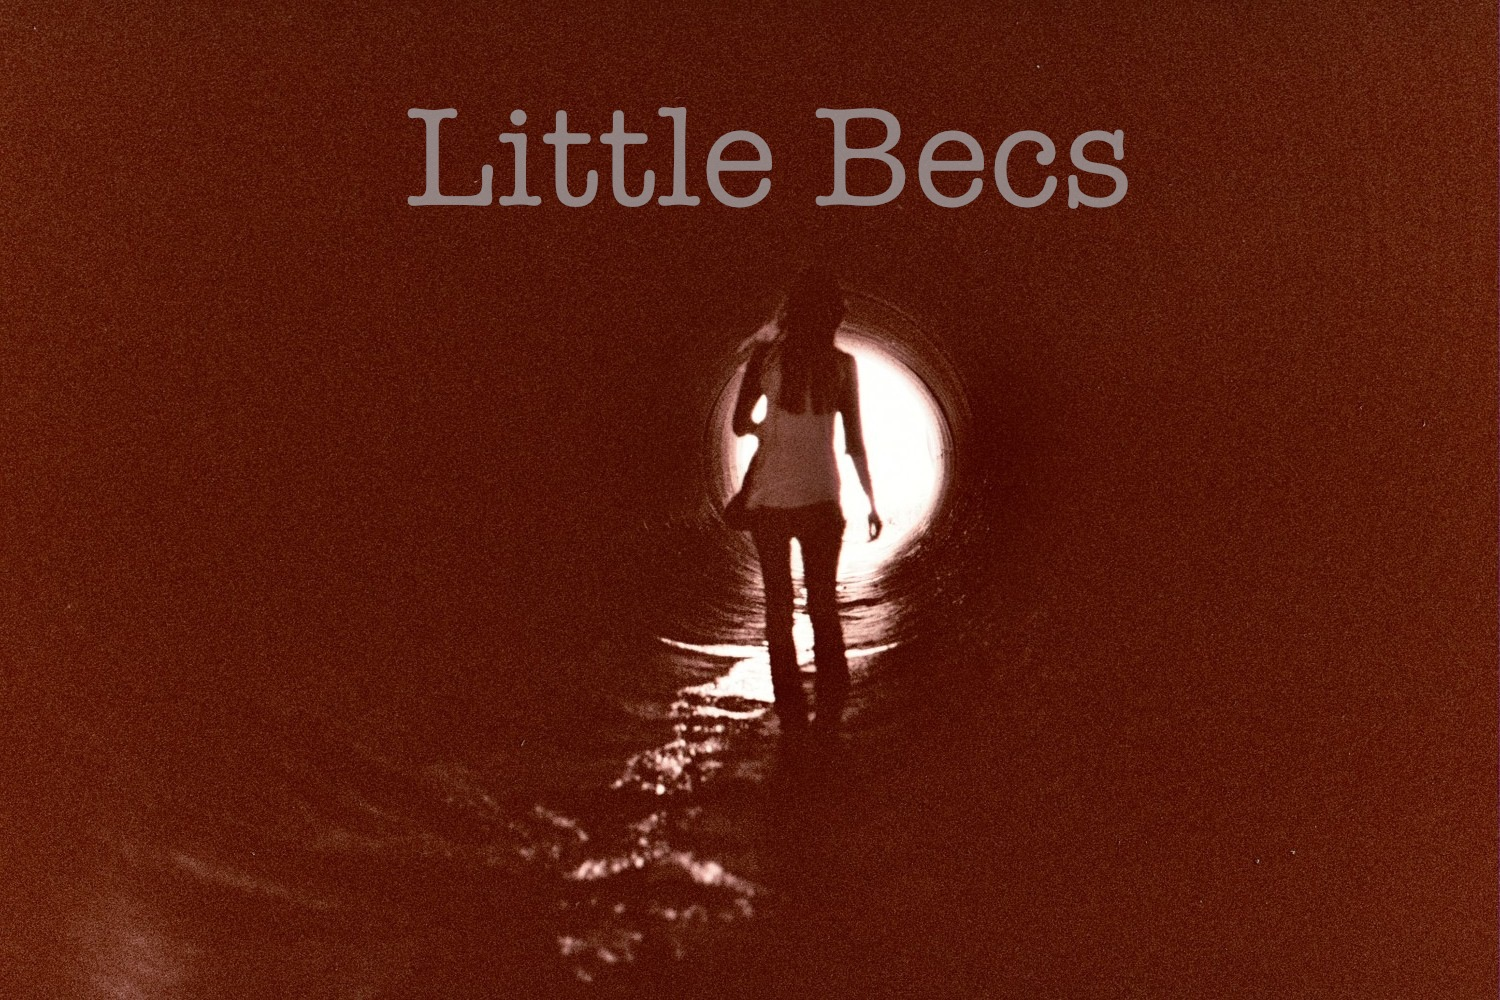 Little Bec's